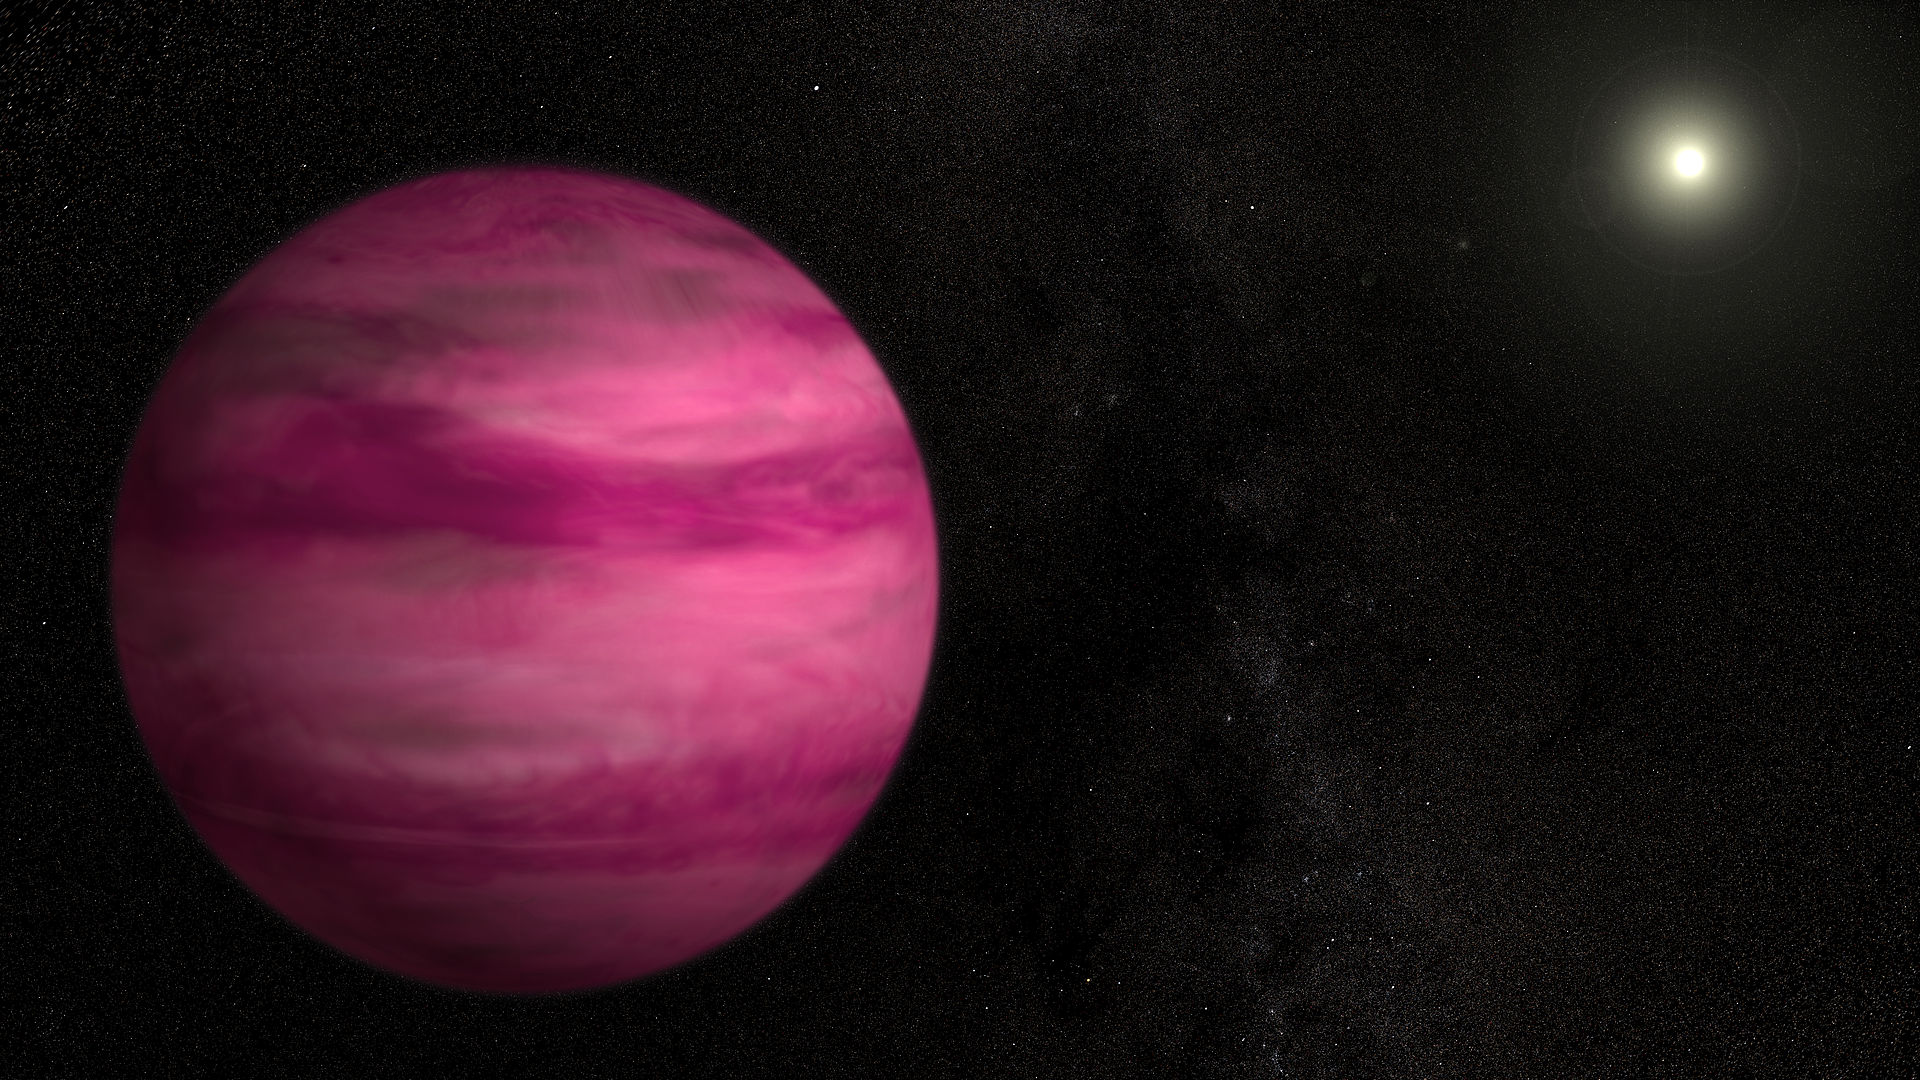 1920px-astronomers_image_lowest-mass_exoplanet_around_a_sun-like_star.jpg